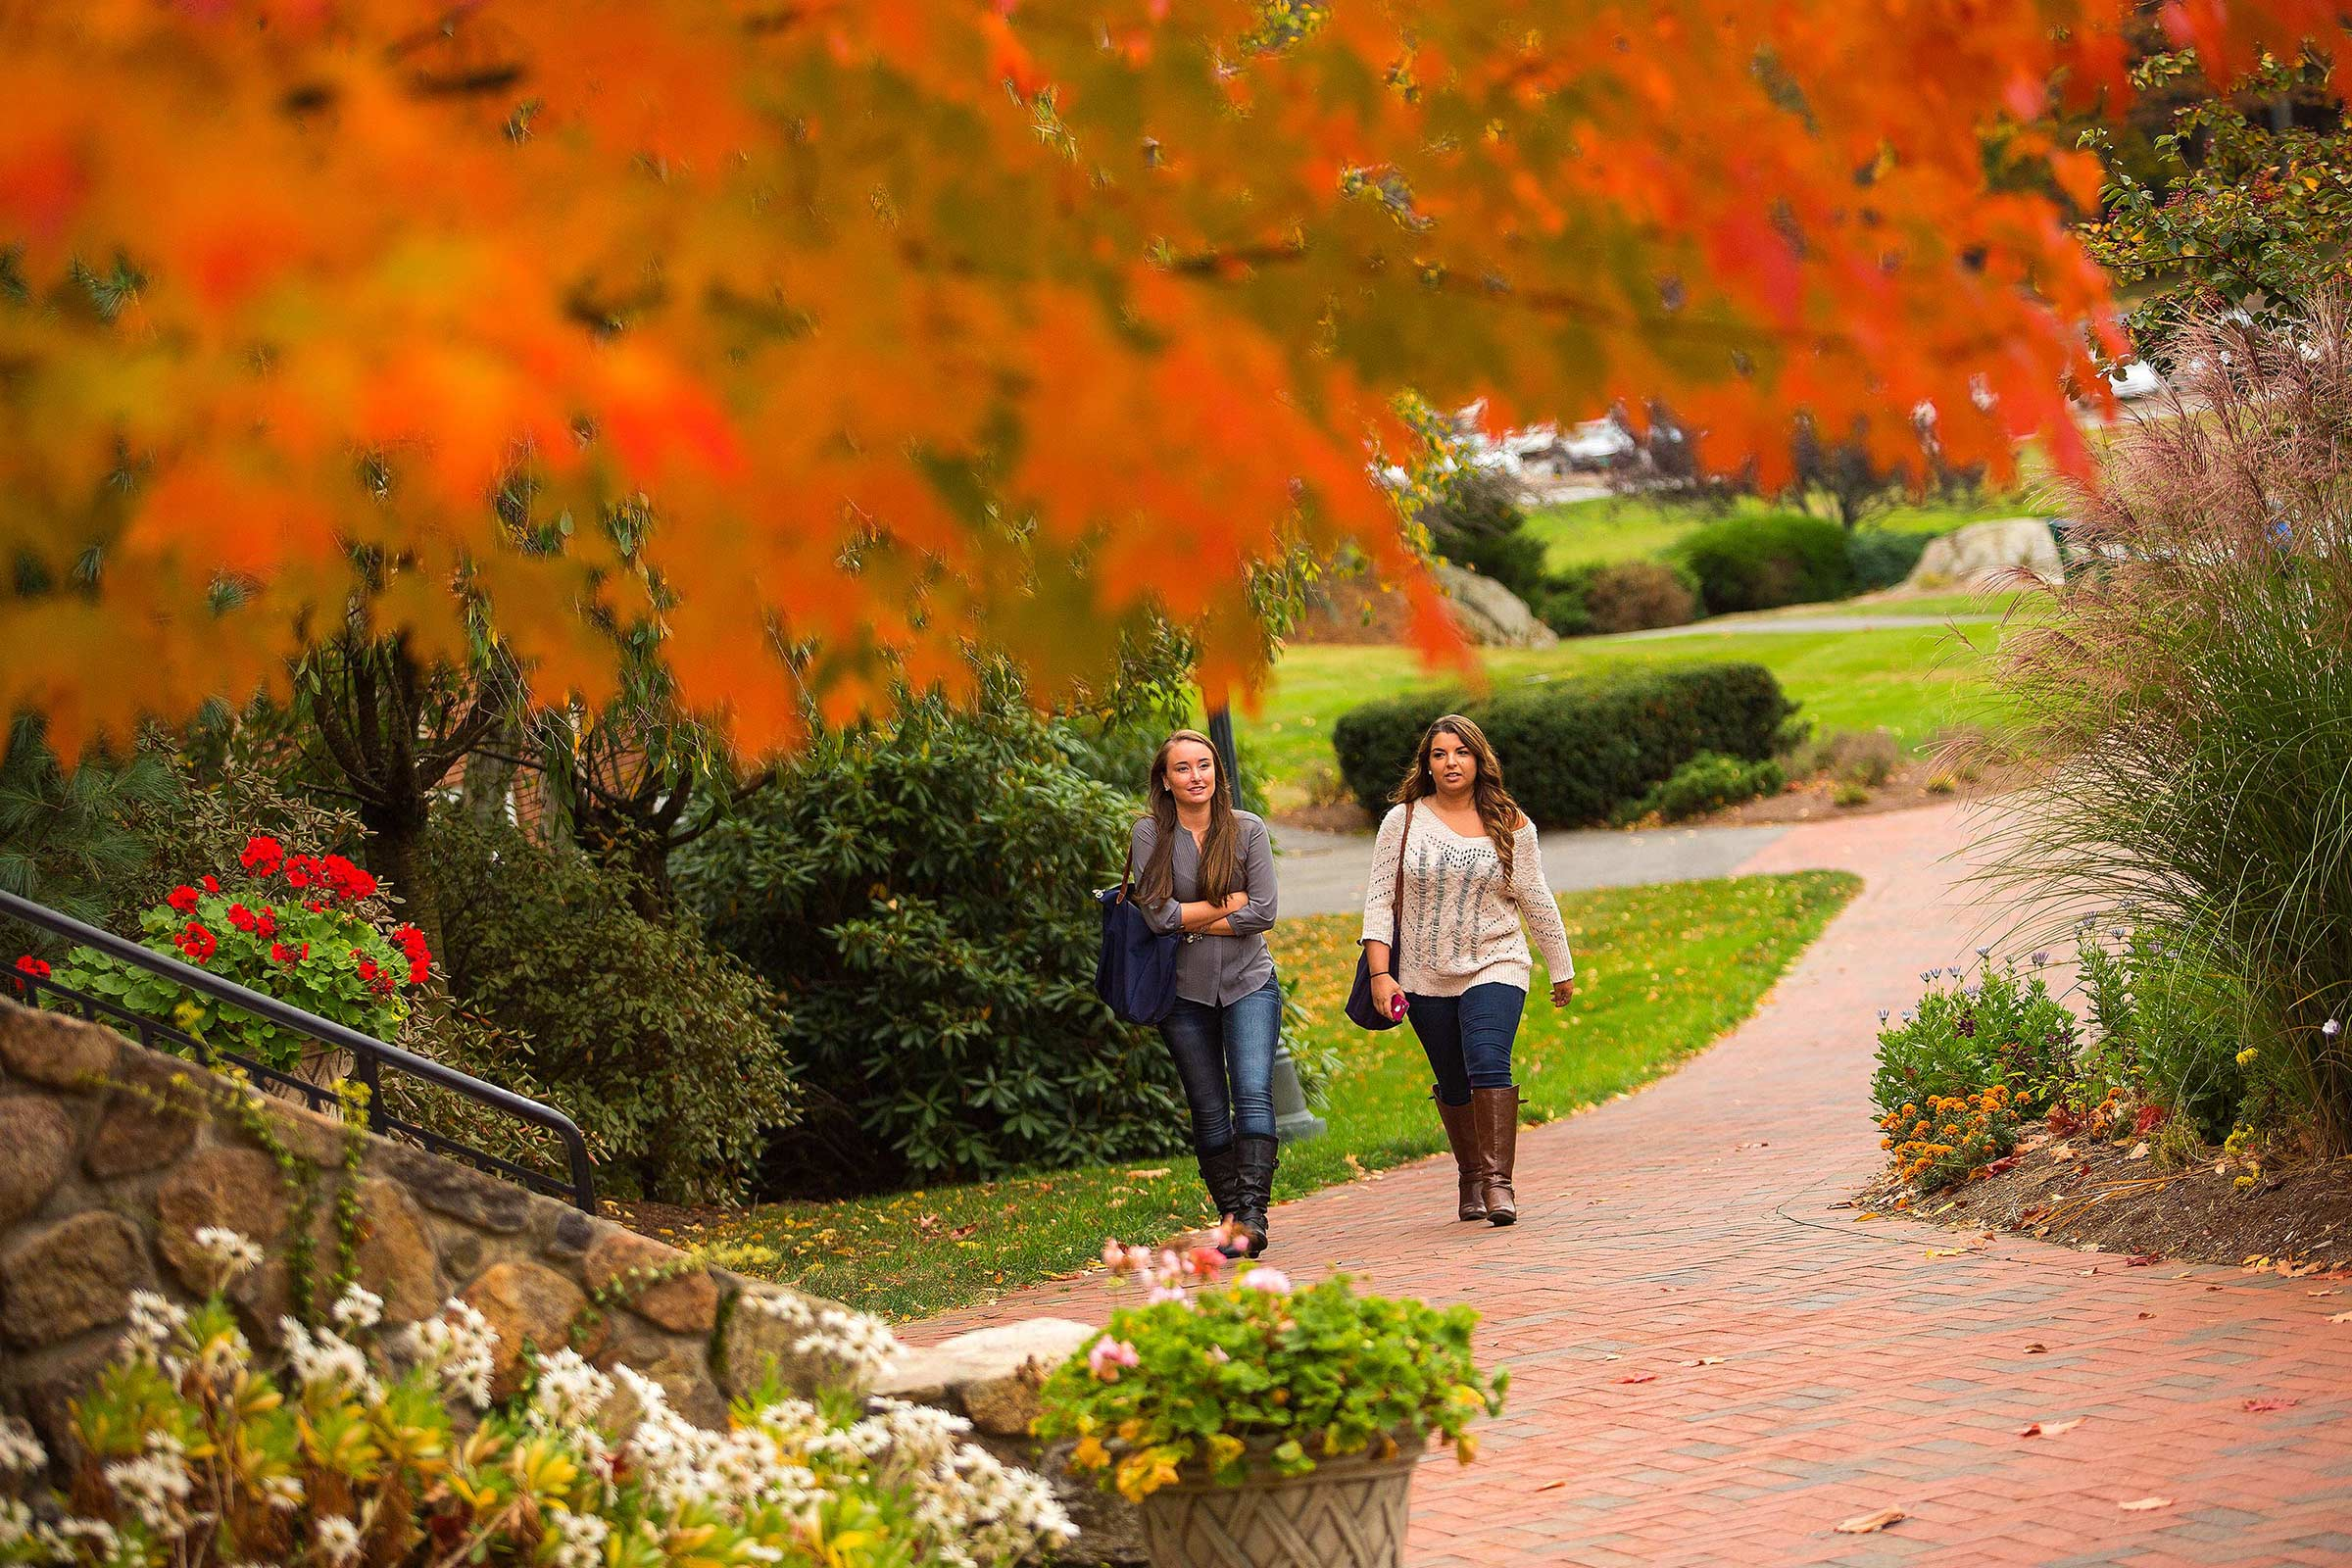 endicott college application essay Endicott college recognizes credit earned at other accredited collegiate institutions, and we encourage transfer applications transfer students should submit all application materials by march 15 for fall admission and december 15 for spring admission.